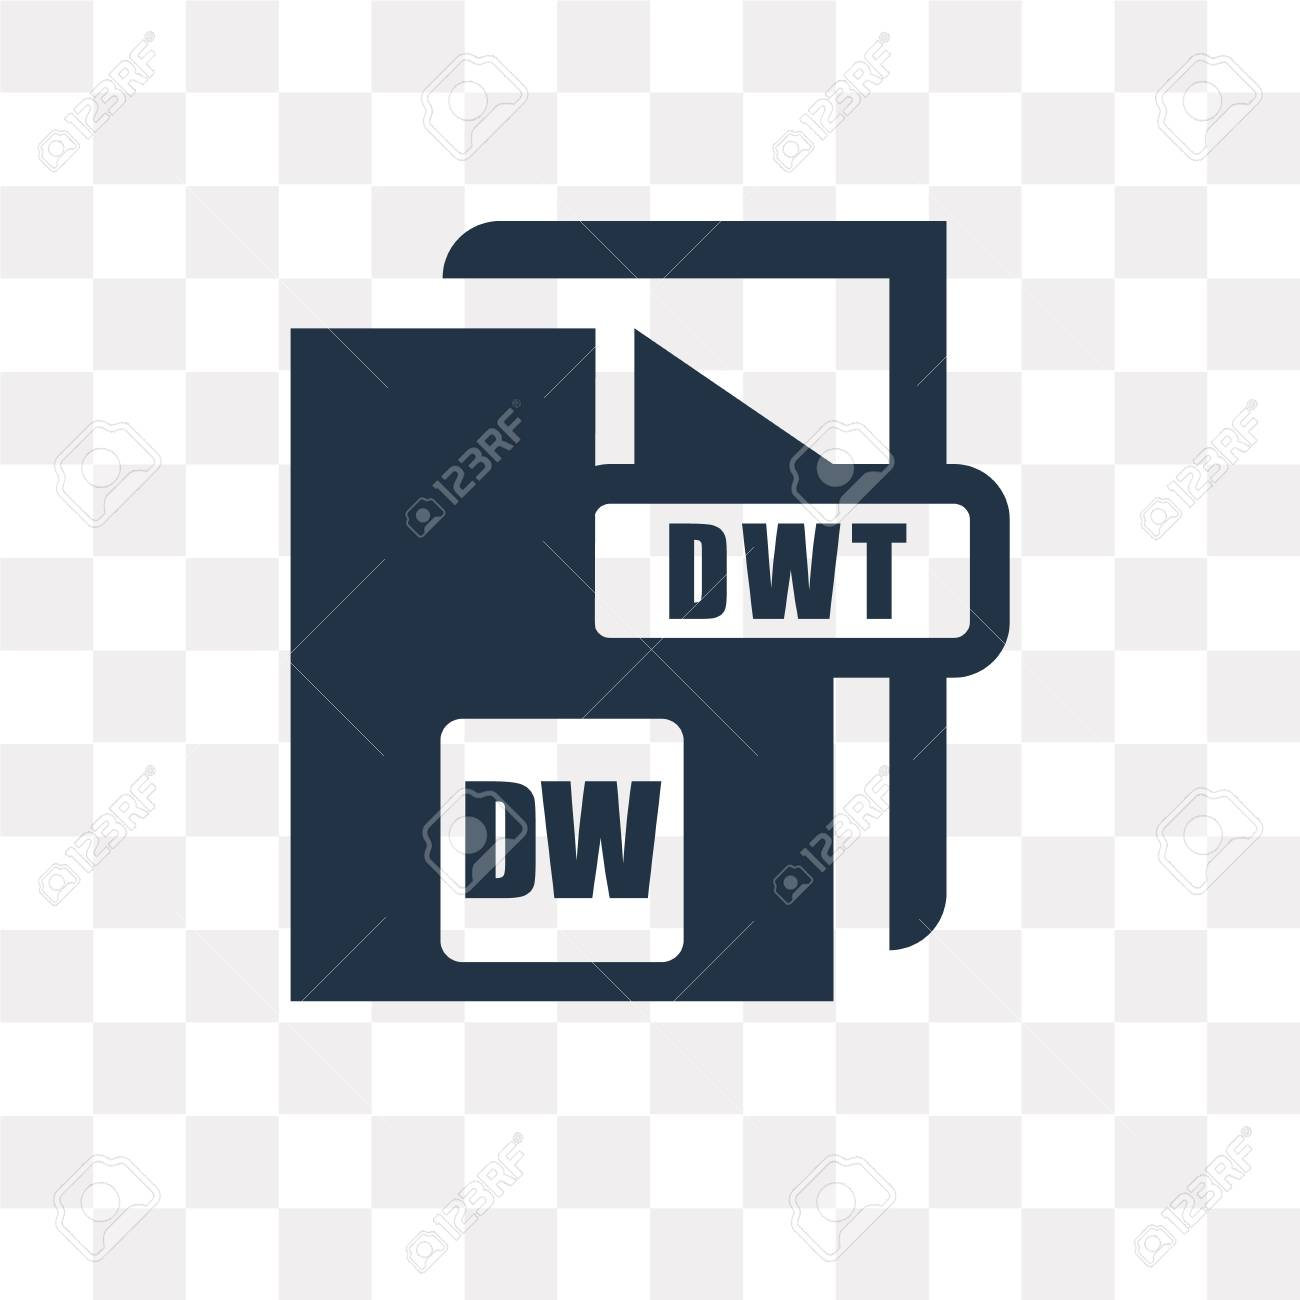 DW Vector Icon Isolated On Transparent Background DW Transparency 1300x1300